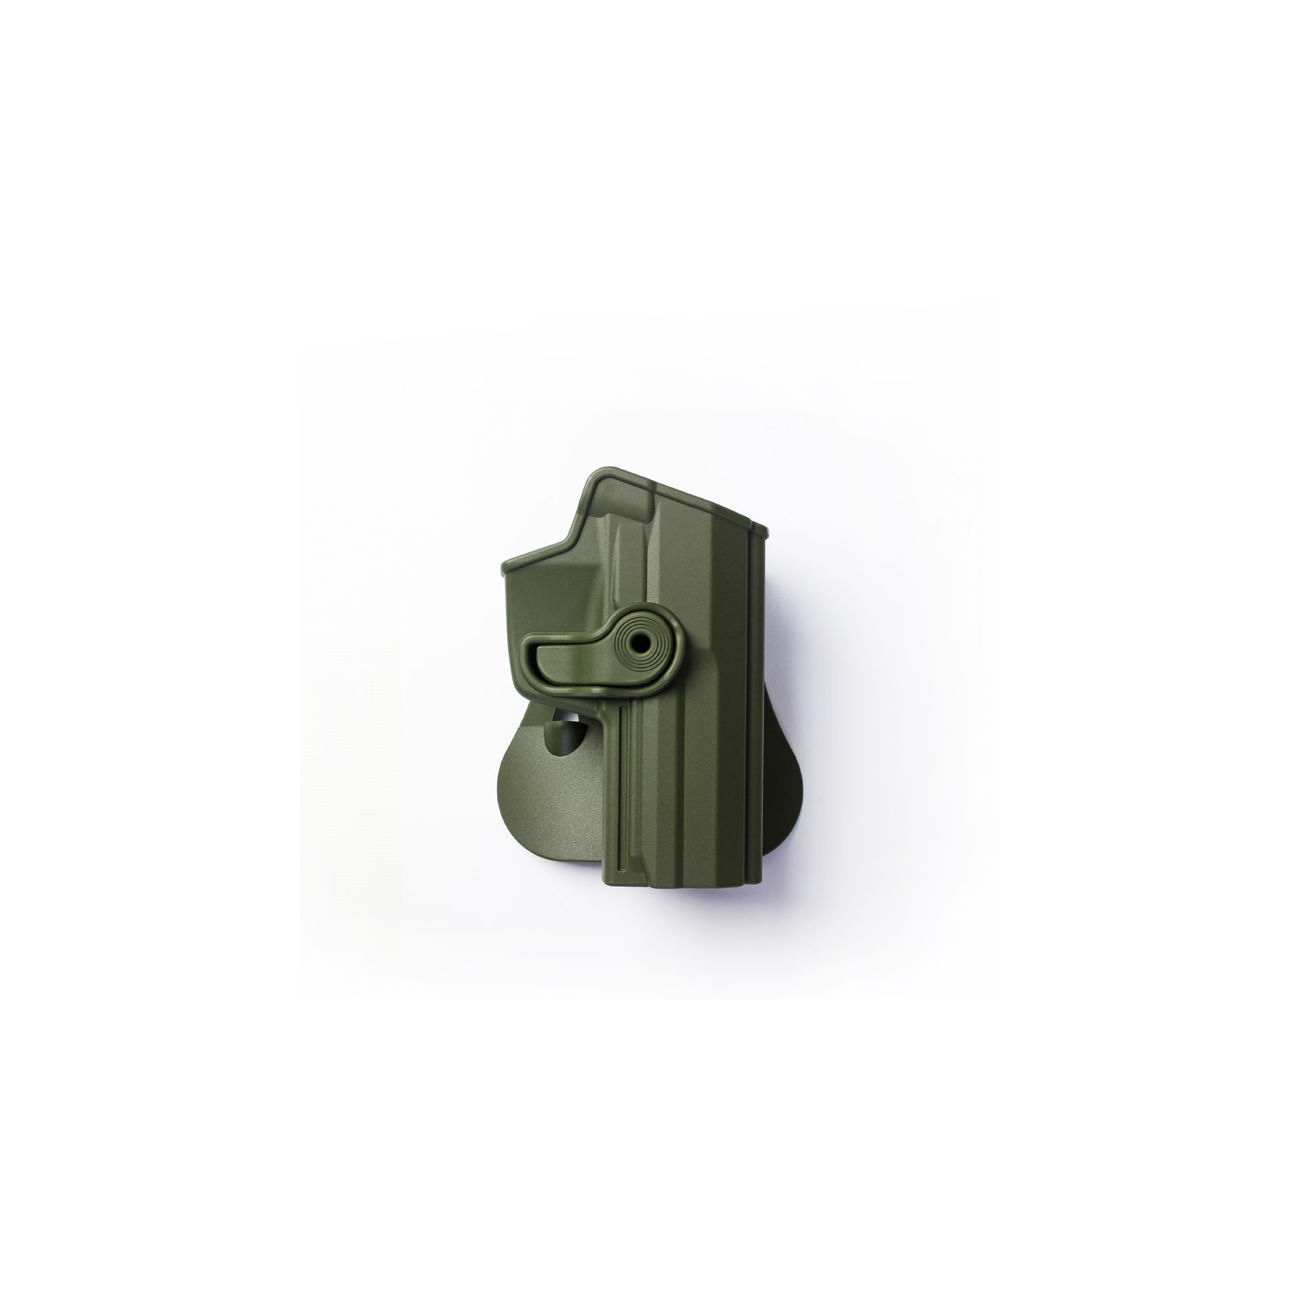 IMI Defense Level 2 Holster Kunststoff Paddle für H&K USP .45 OD 0